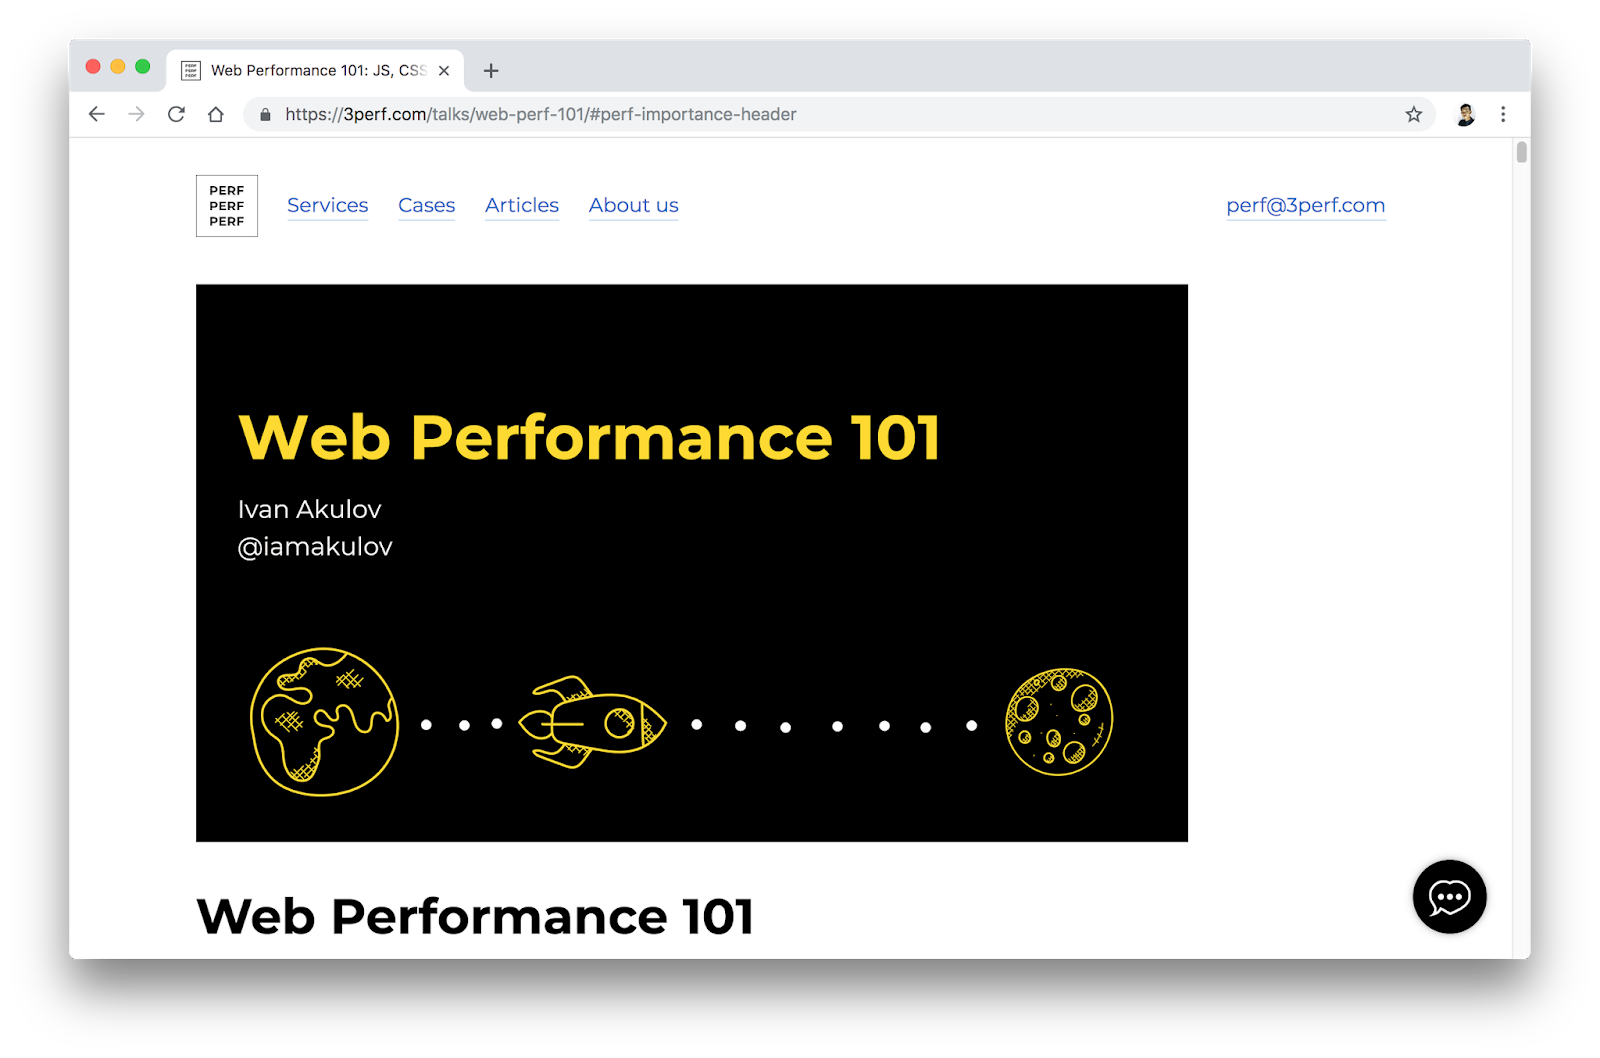 Web Performance 101